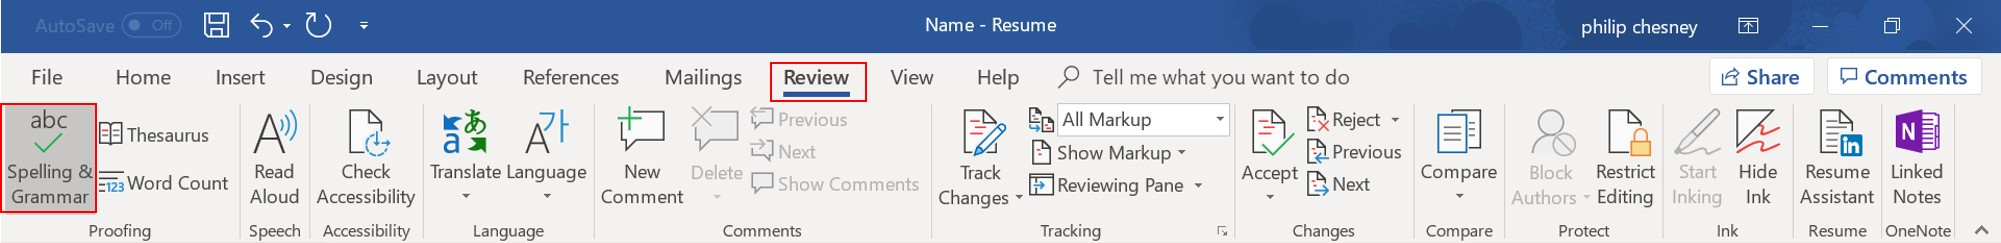 how to format your resume for applicant tracking systems